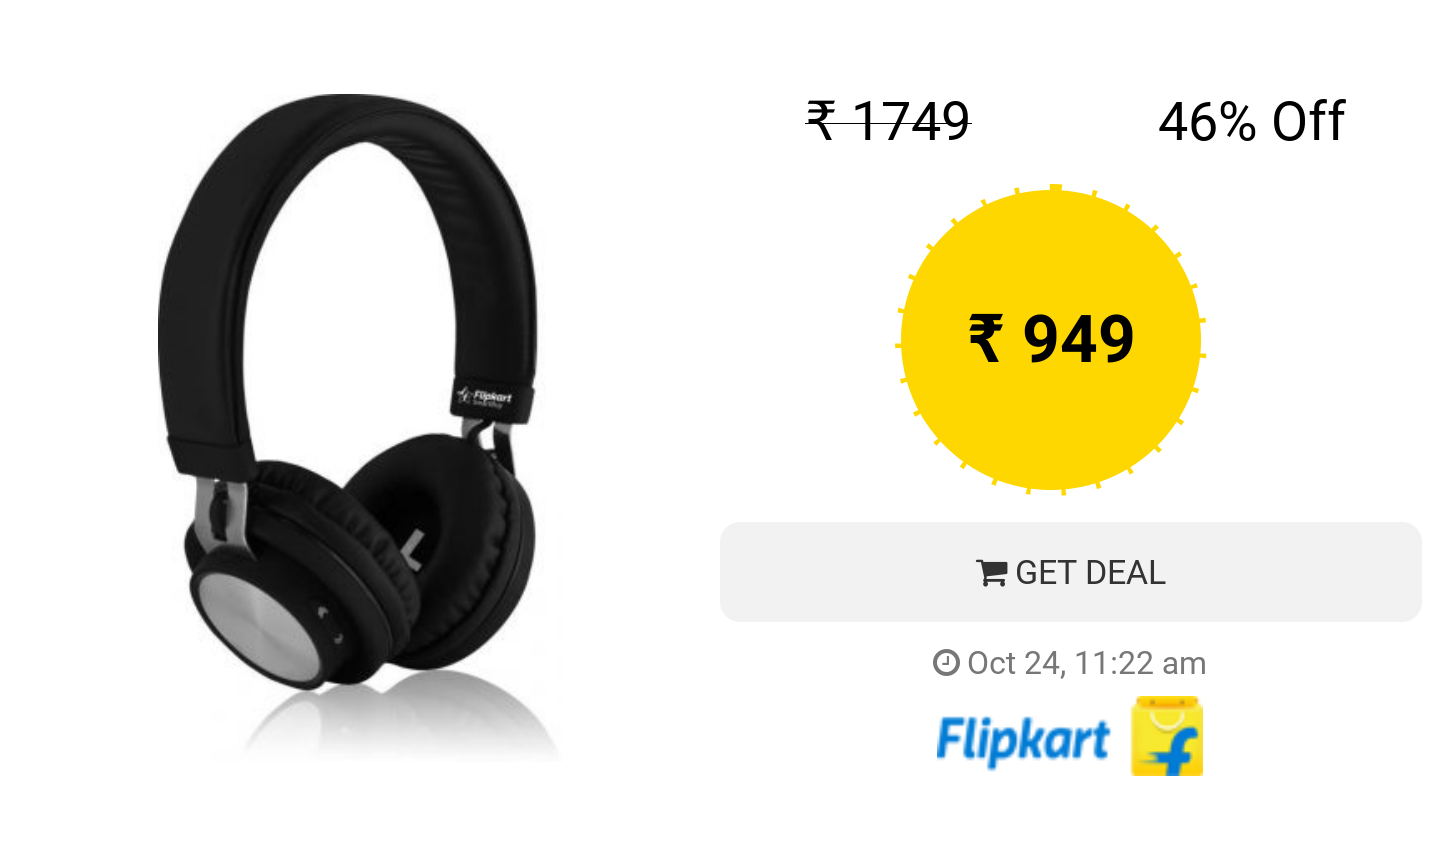 Flipkart Smartbuy Rich Bass Wireless Bluetooth Headset With Mic Black Over The Ear With Images Headset Bluetooth Headset Wireless Bluetooth